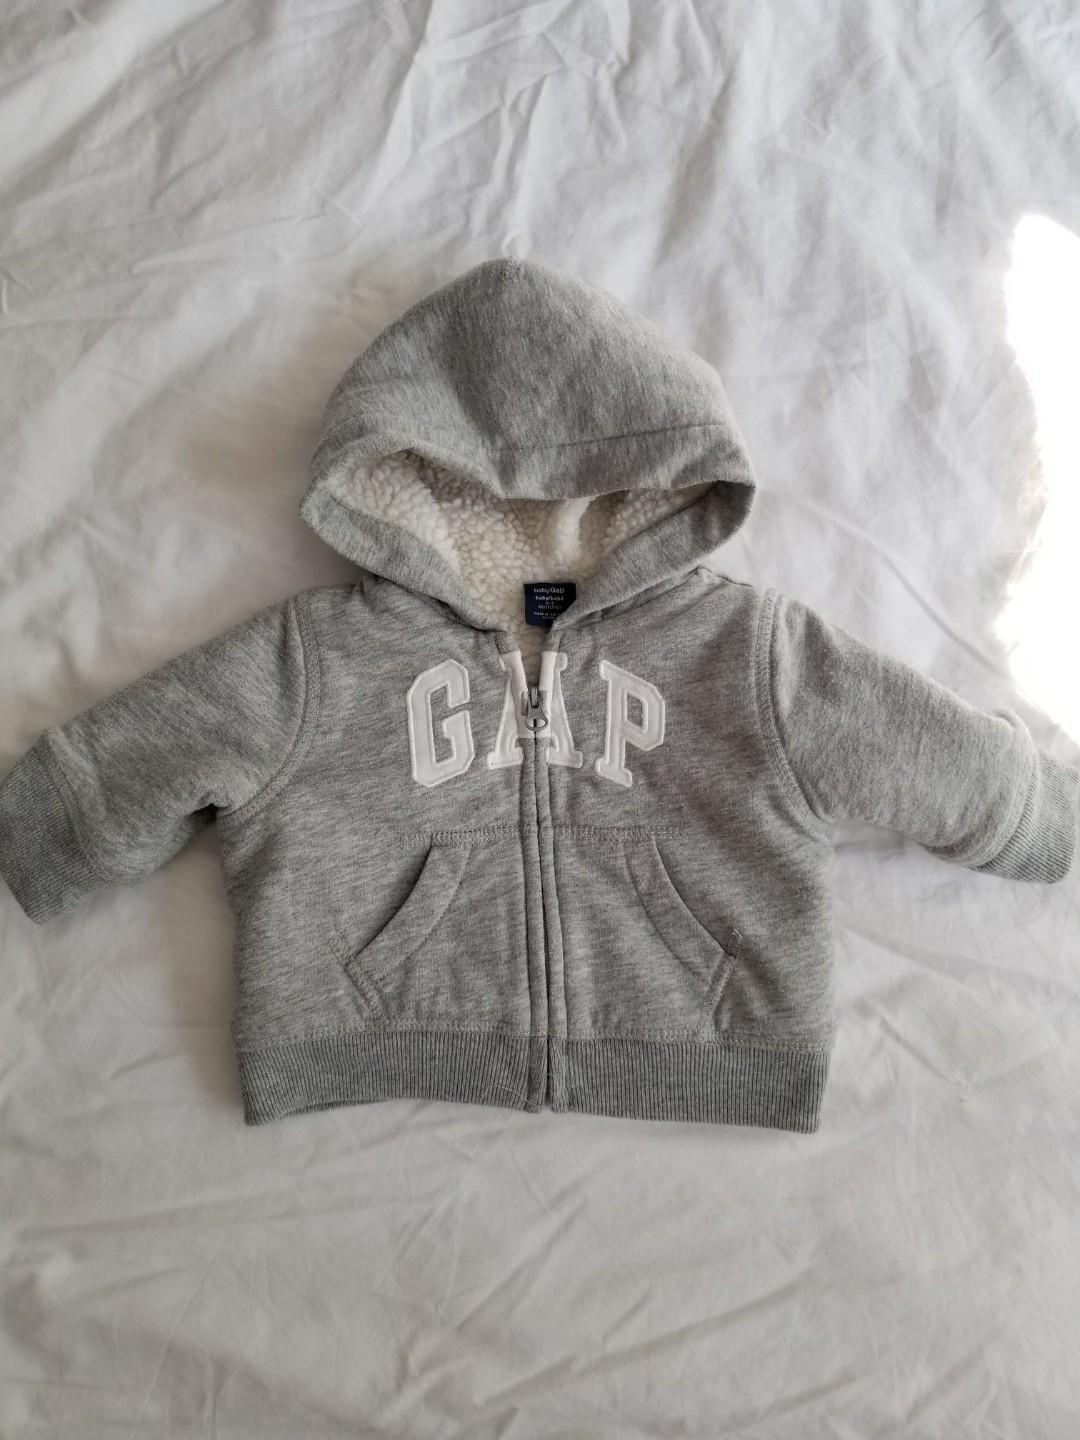 Baby Gap hoodie. Must have for fall winter. New condition. Size 0-3 mths. Purchased new for $39. Porch pick up beaches at main and kingston $8 or yorkville $10.